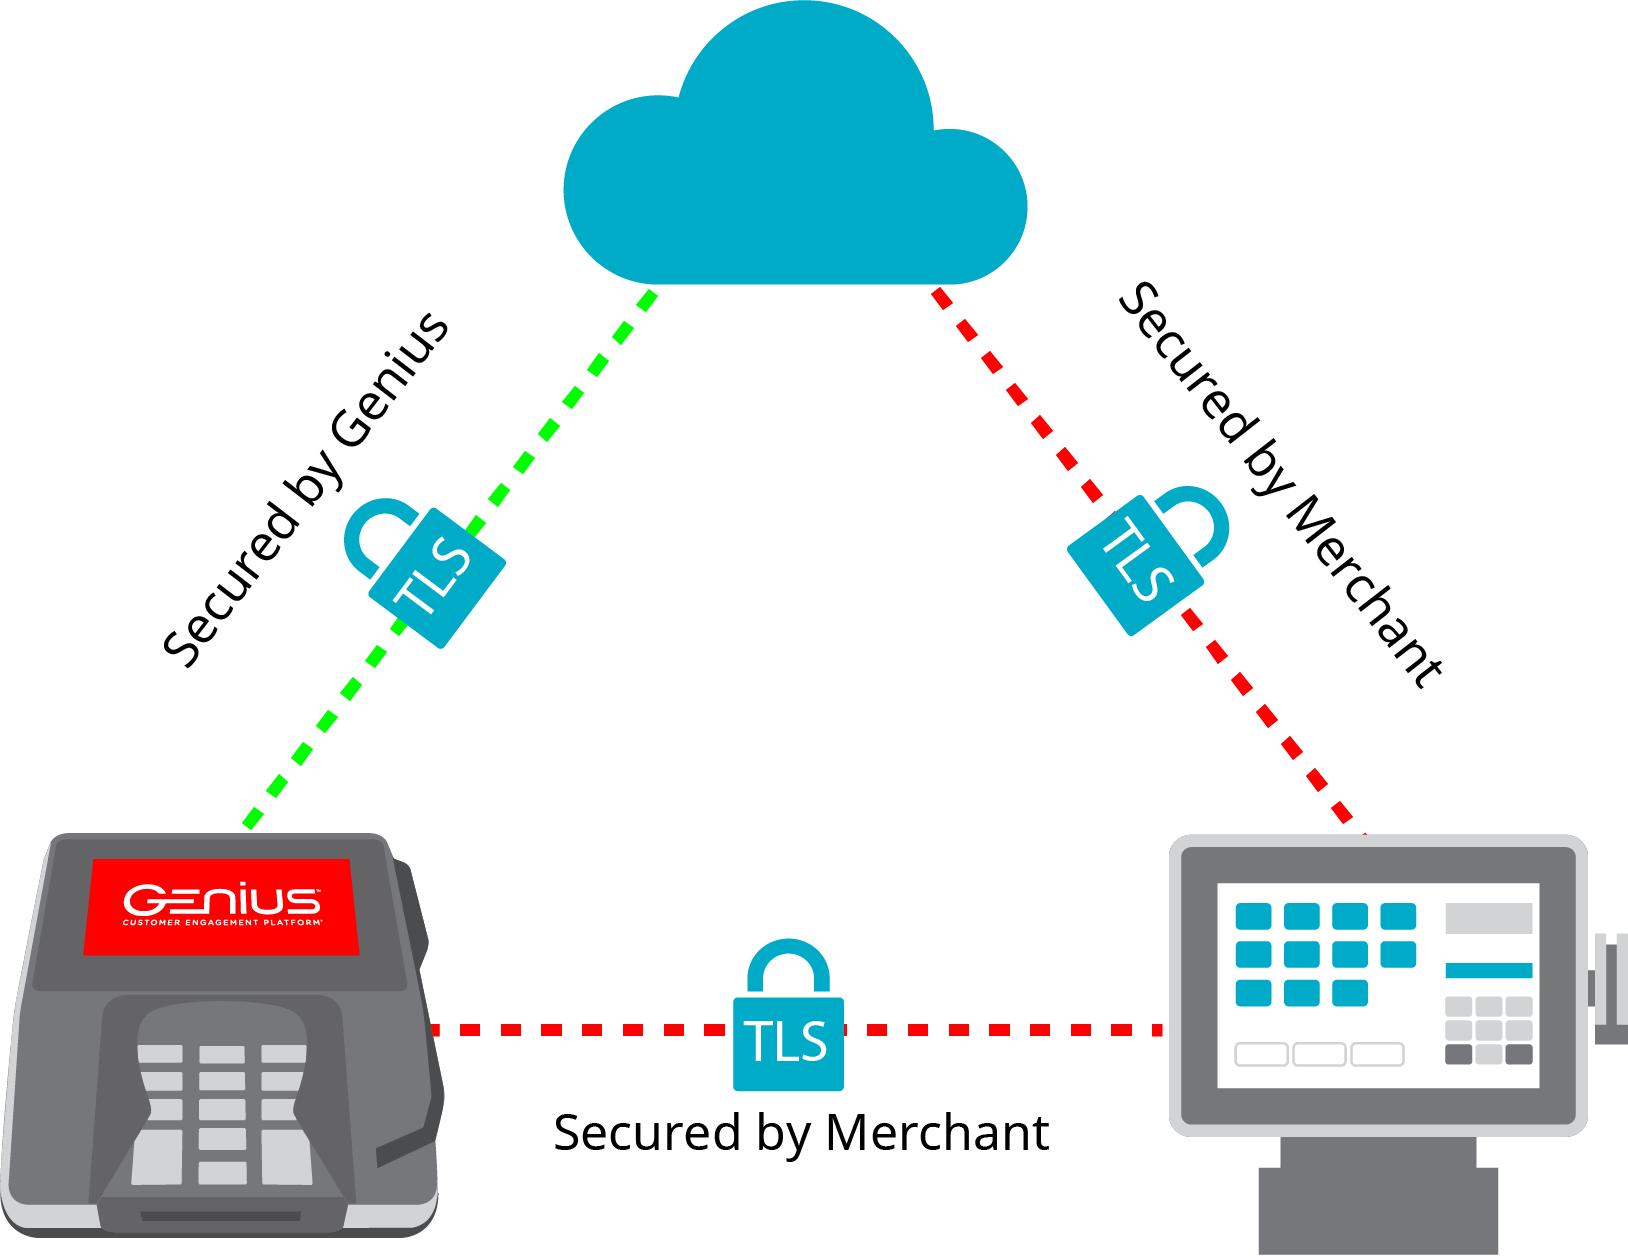 A diagram that shows a Genius device, a POS, and a cloud connecting using TLS.